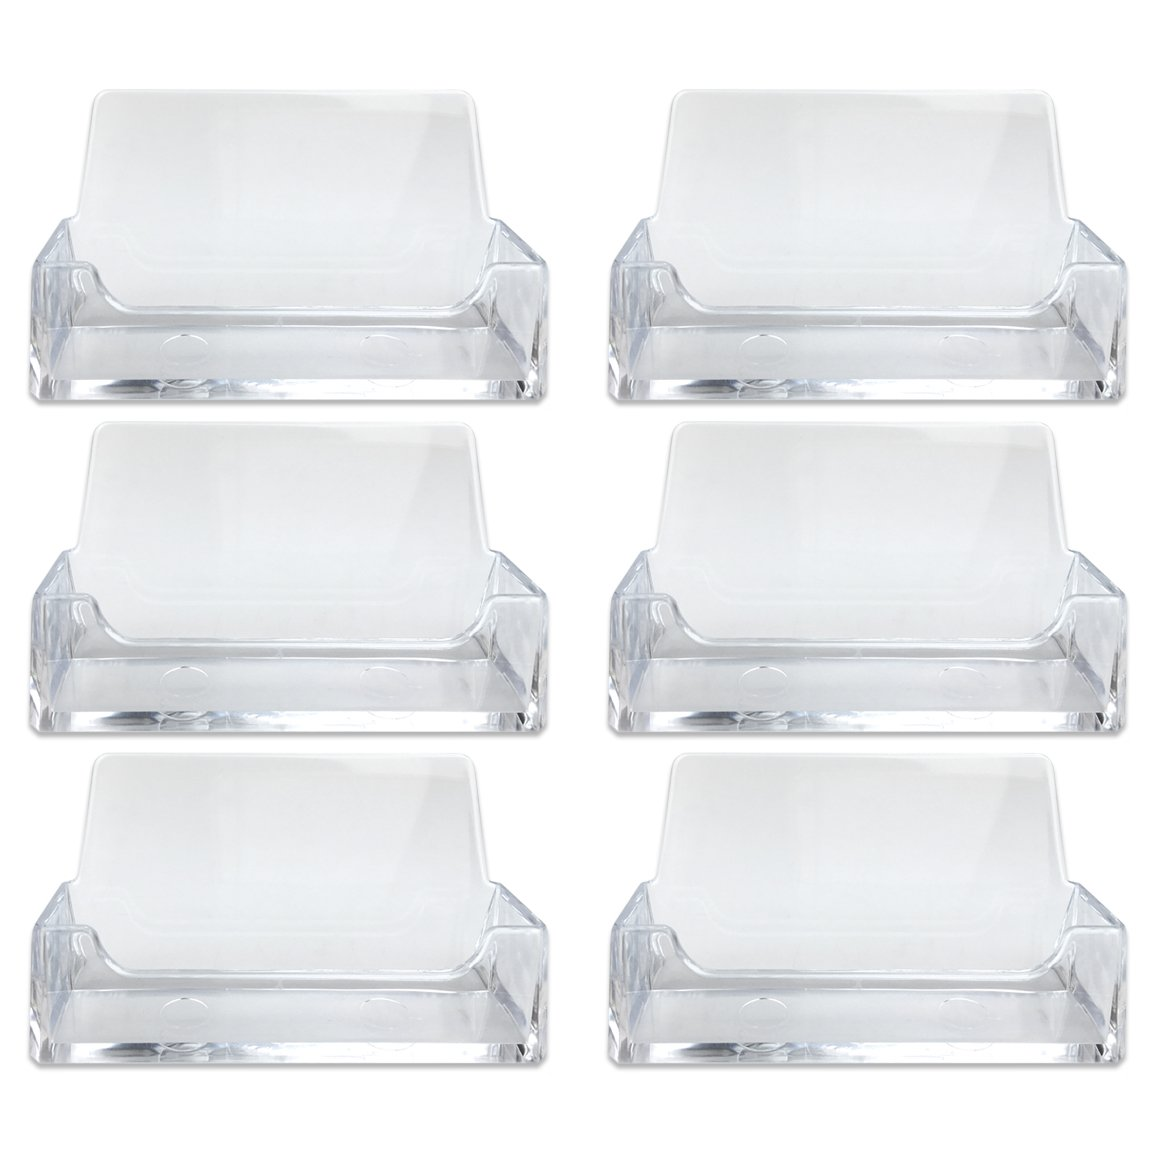 Beauticom (Quantity: 6 Piece) Clear Acrylic Single Compartment Desktop Business Card Holder Display Stand OP-35358